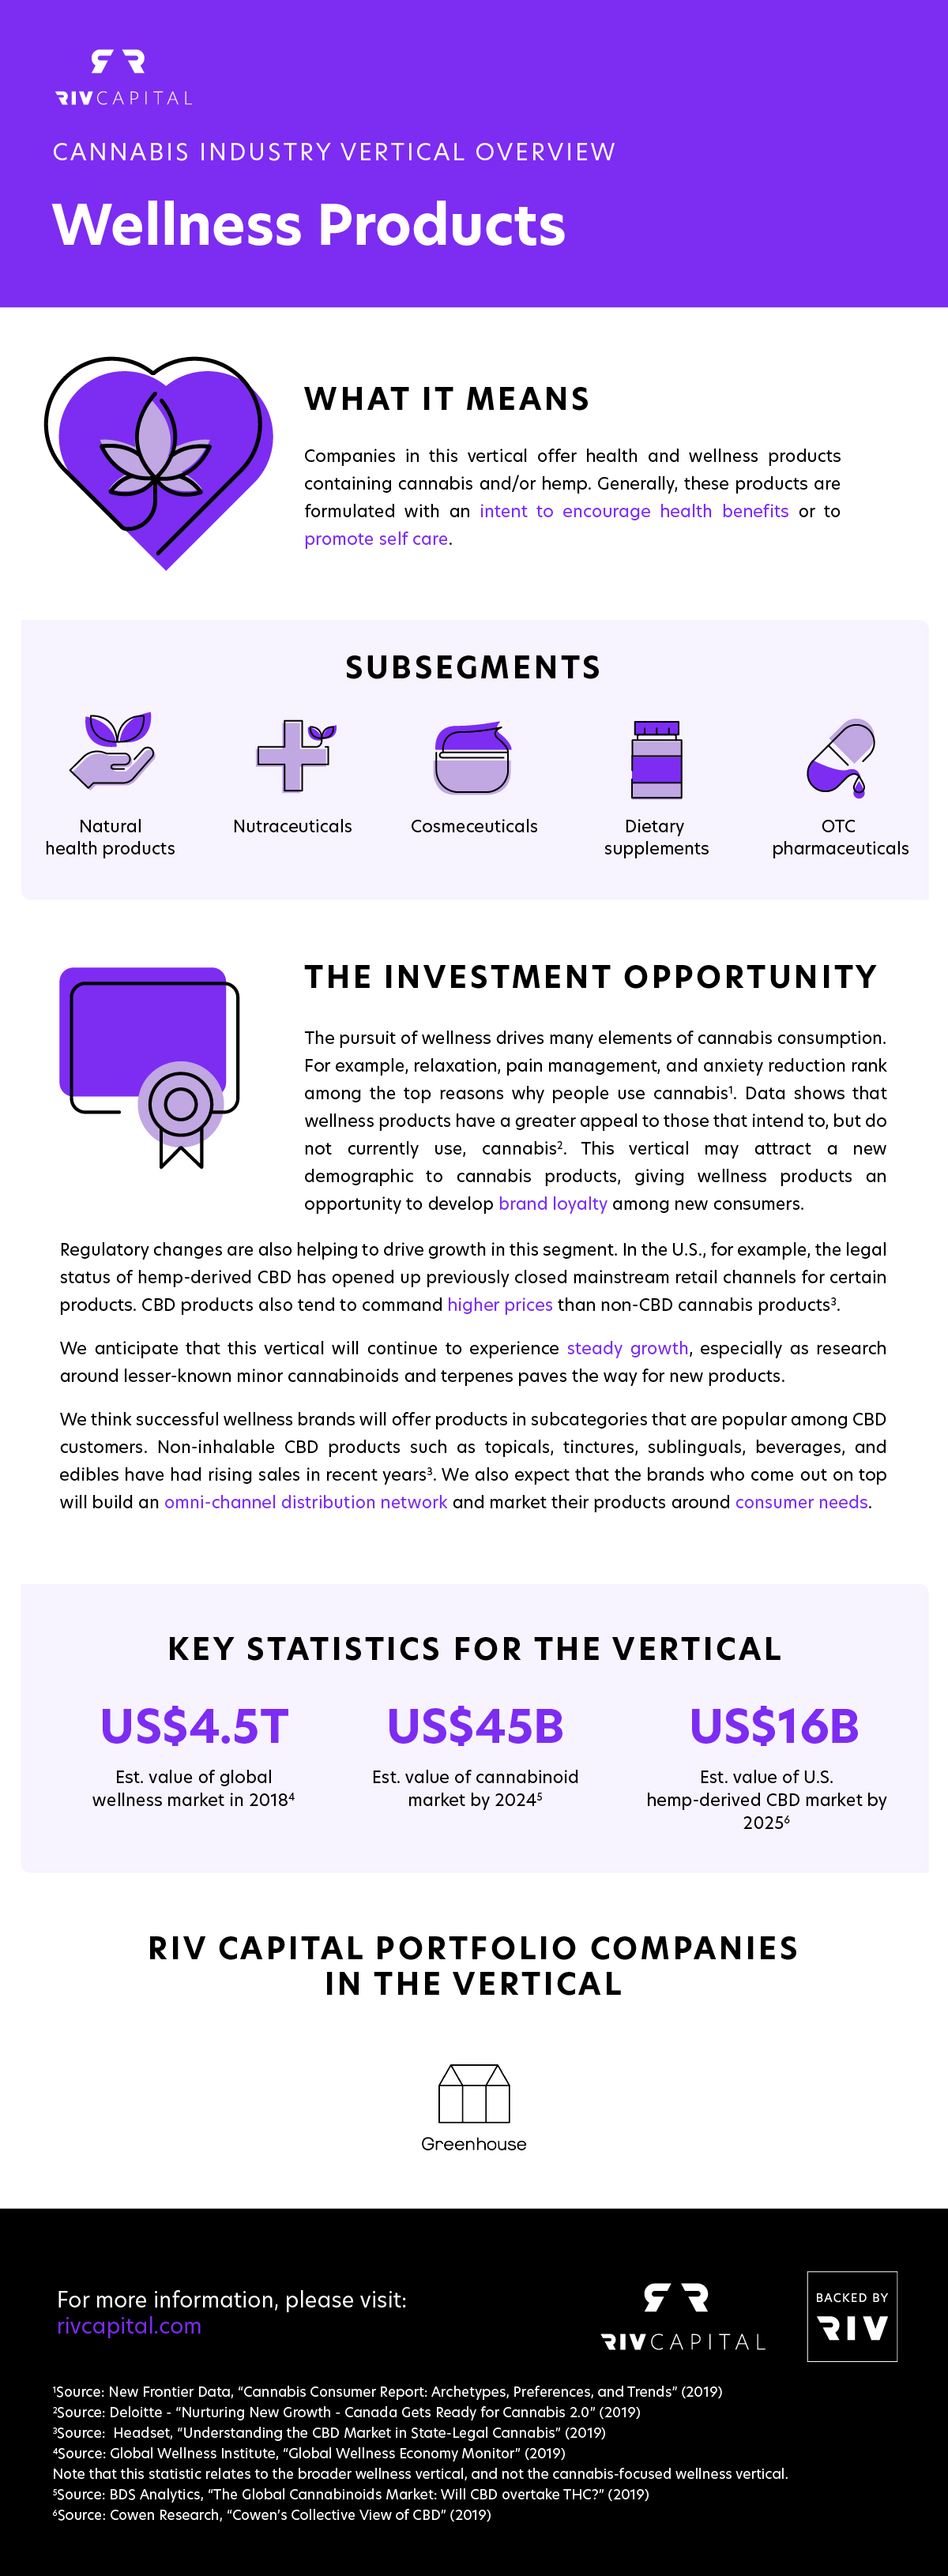 Wellness products: statistics, subsegments and the investment opportunity for the cannabis industry (infographic)